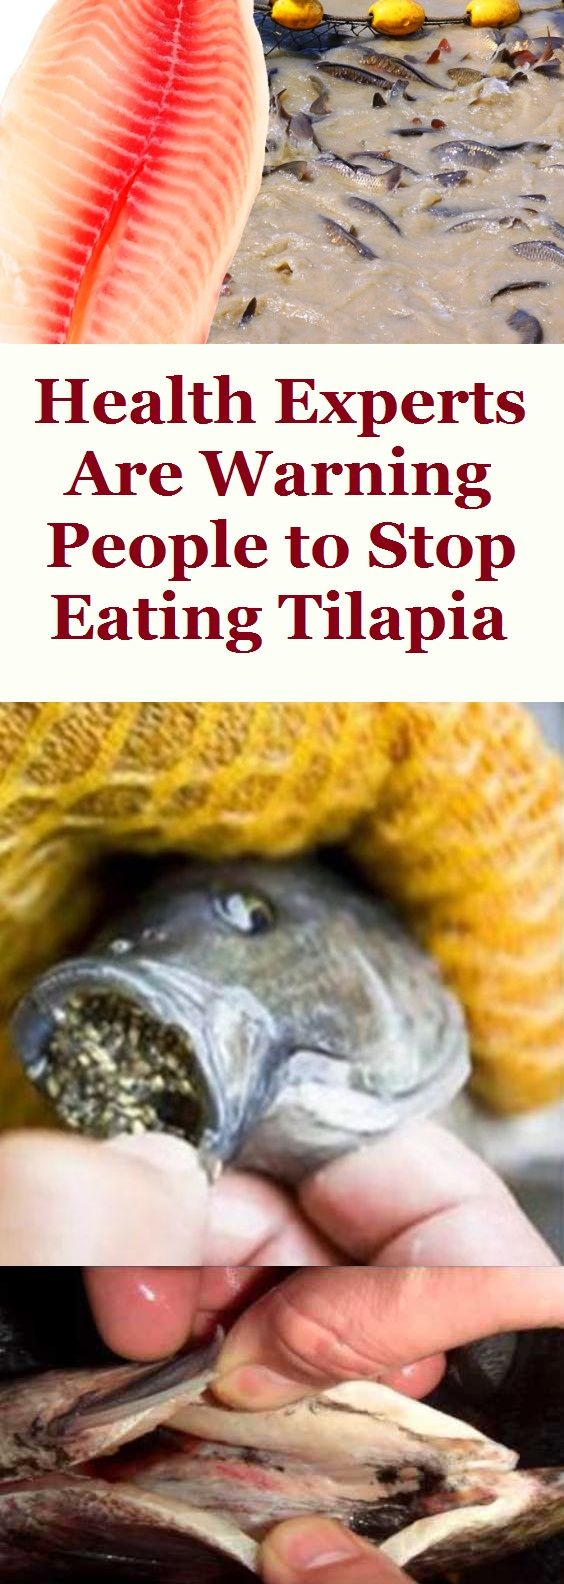 Health Experts Are Warning People to Stop Eating Tilapia